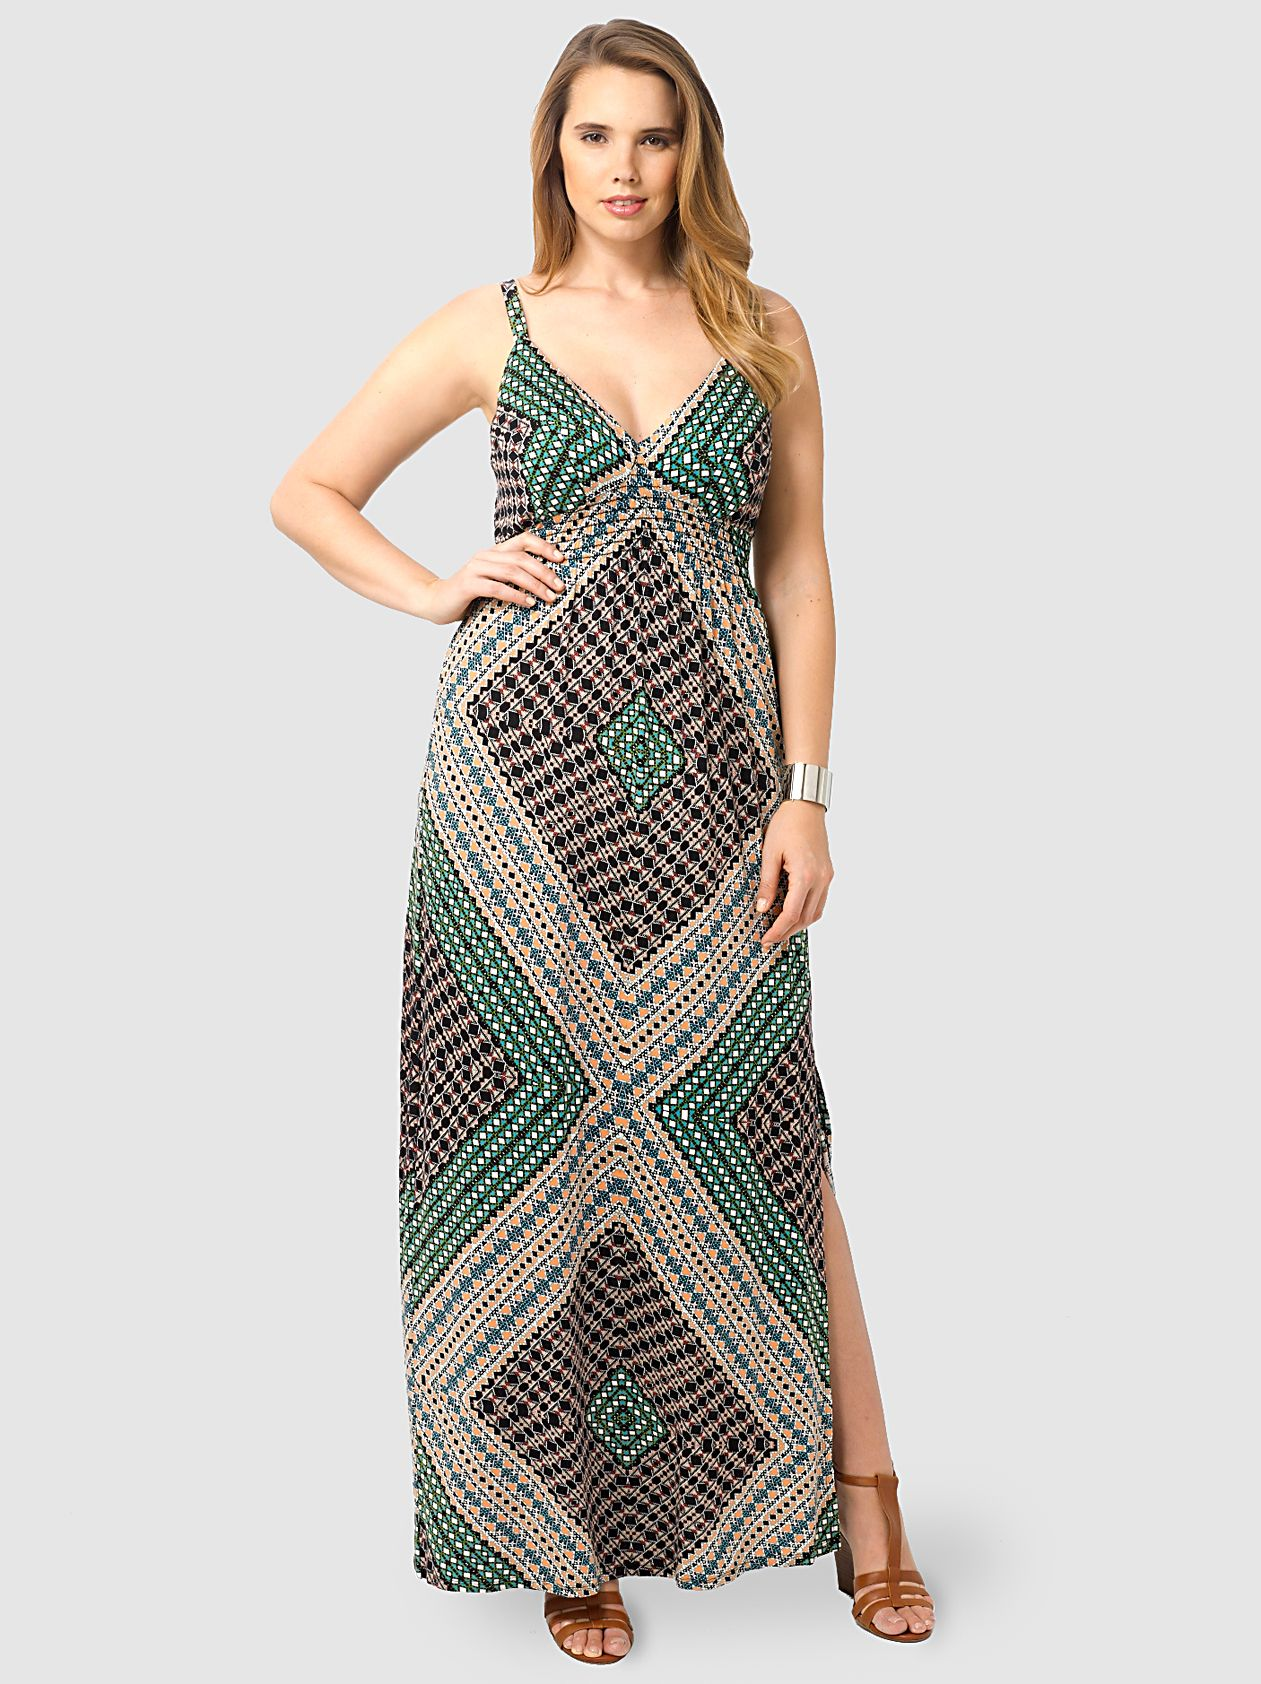 Crepe Maxi Dress In Nomad's Land by Eight Sixty,Available in sizes 1X-3X